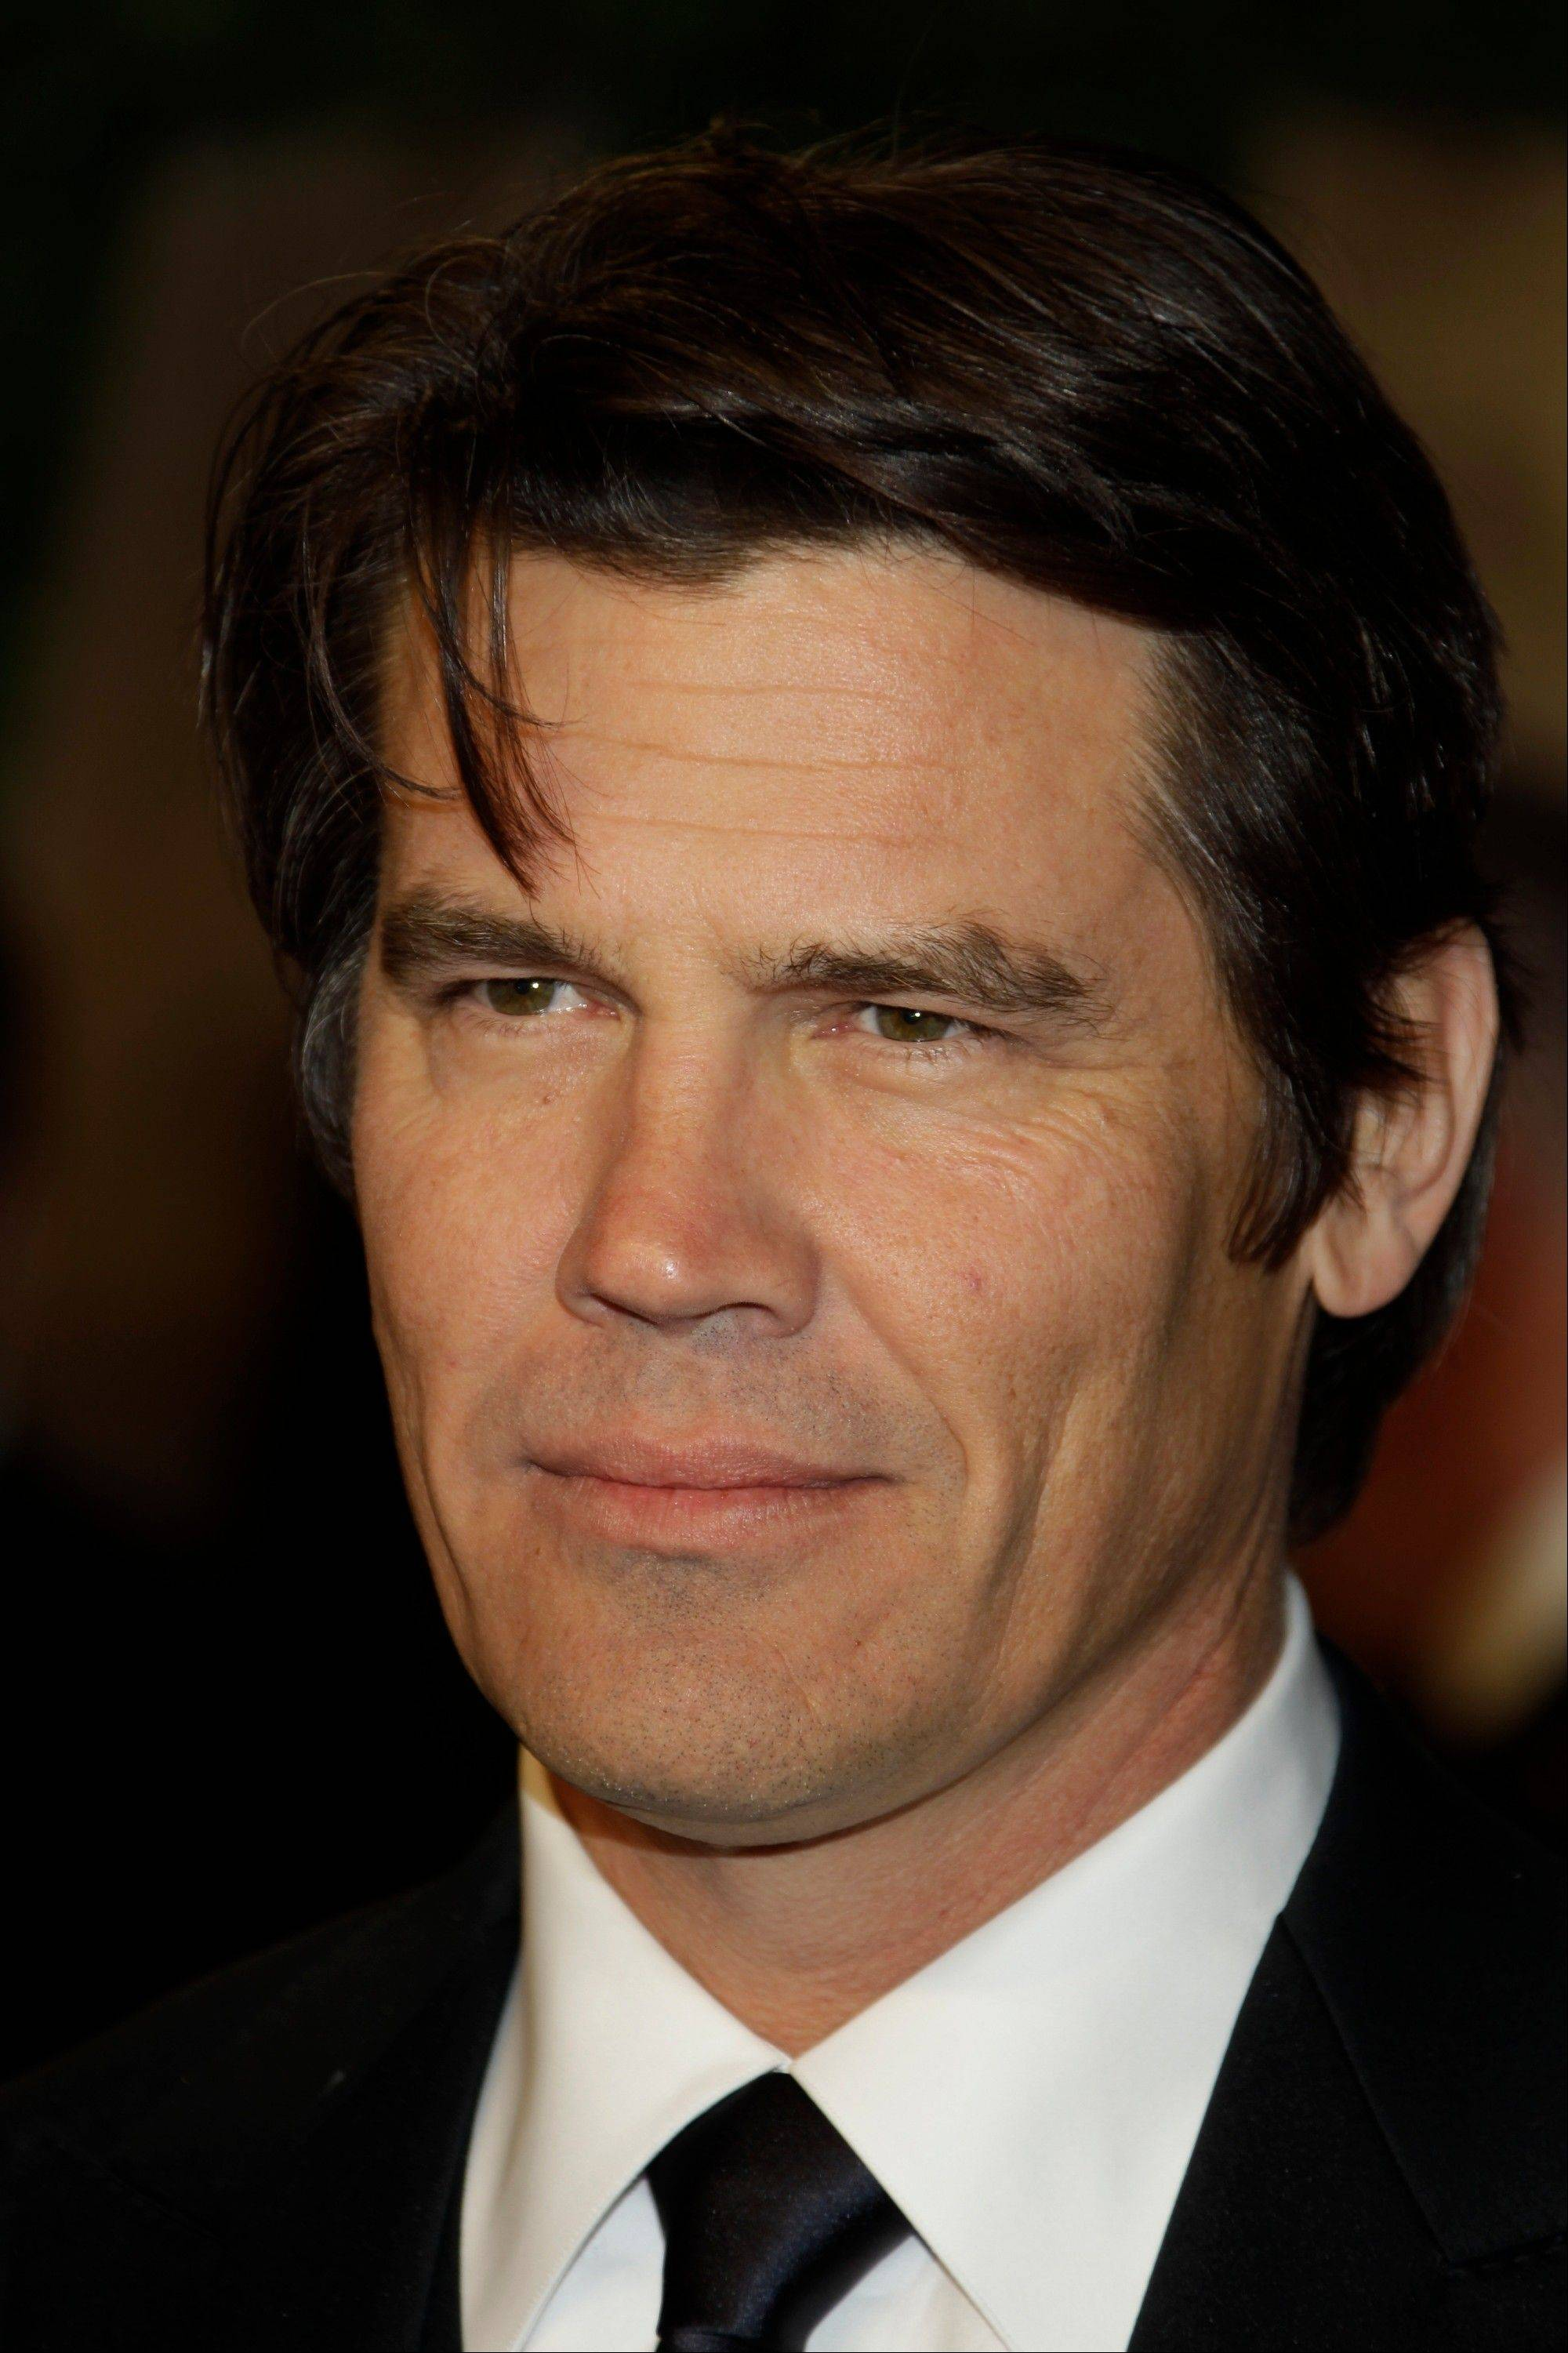 Josh Brolin spent some time New Year�s Day and the following morning in a Southern California jail cell after getting arrested on charges of misdemeanor public intoxication.